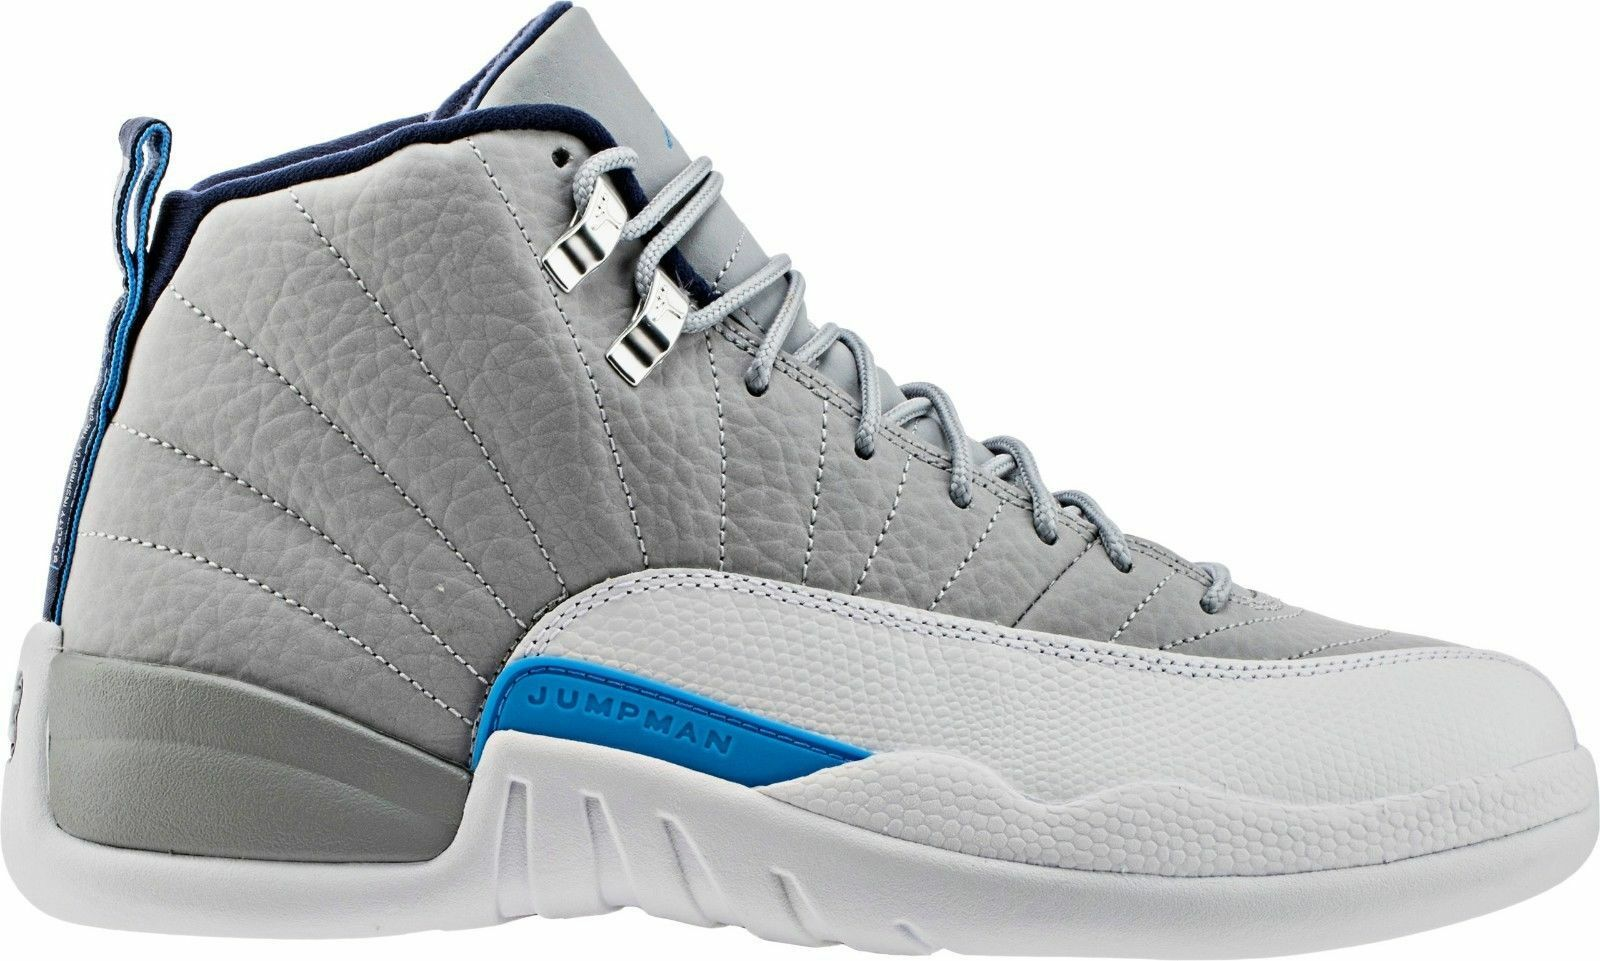 NIKE AIR JORDAN 12 RETRO  WOLF GREY WHITE blueE UNC 130690-007 (Size 13)